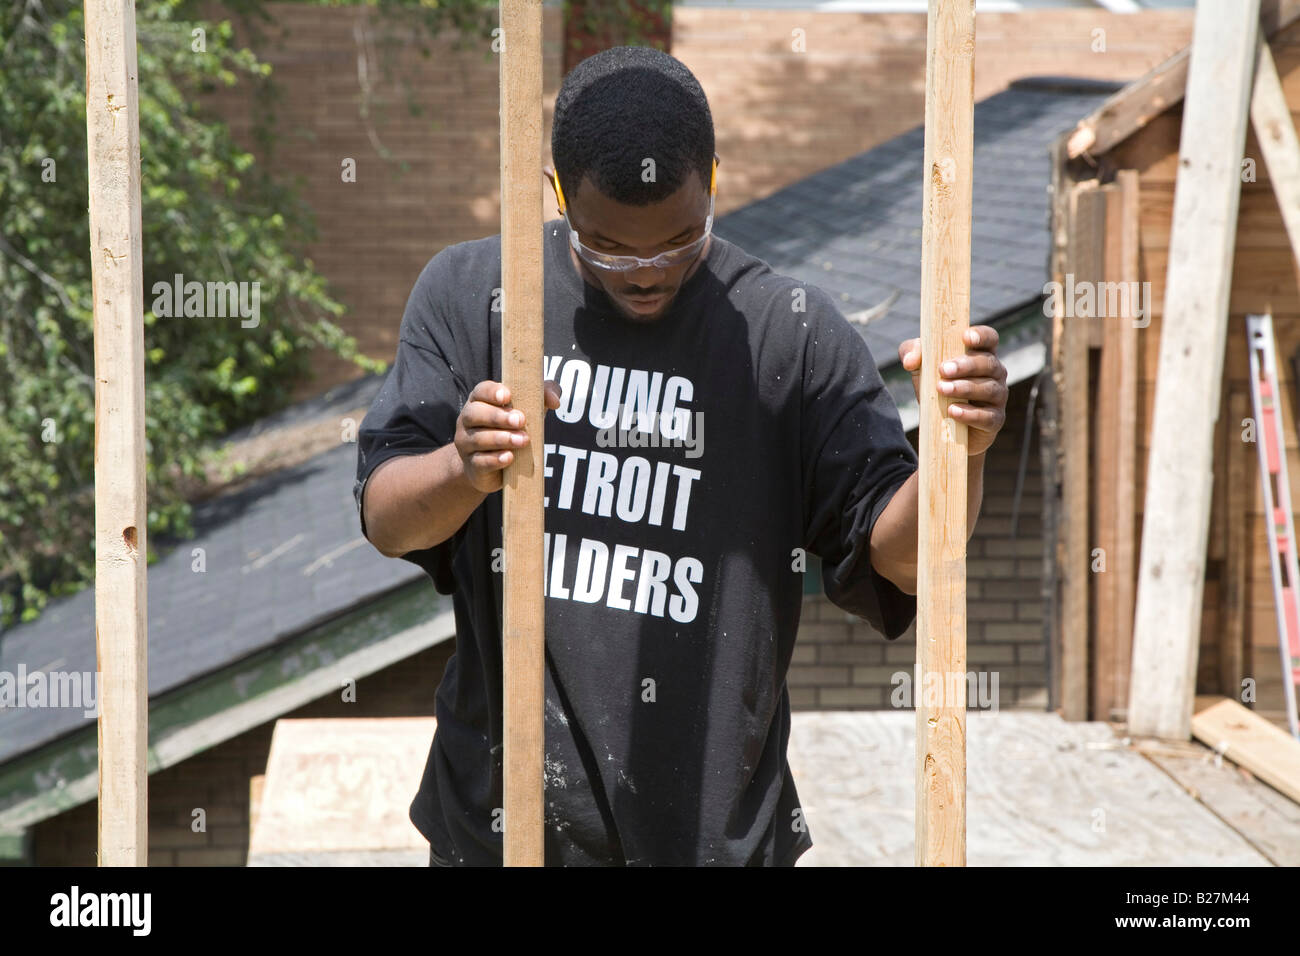 High School Dropouts Learn Construction Skills Stock Photo